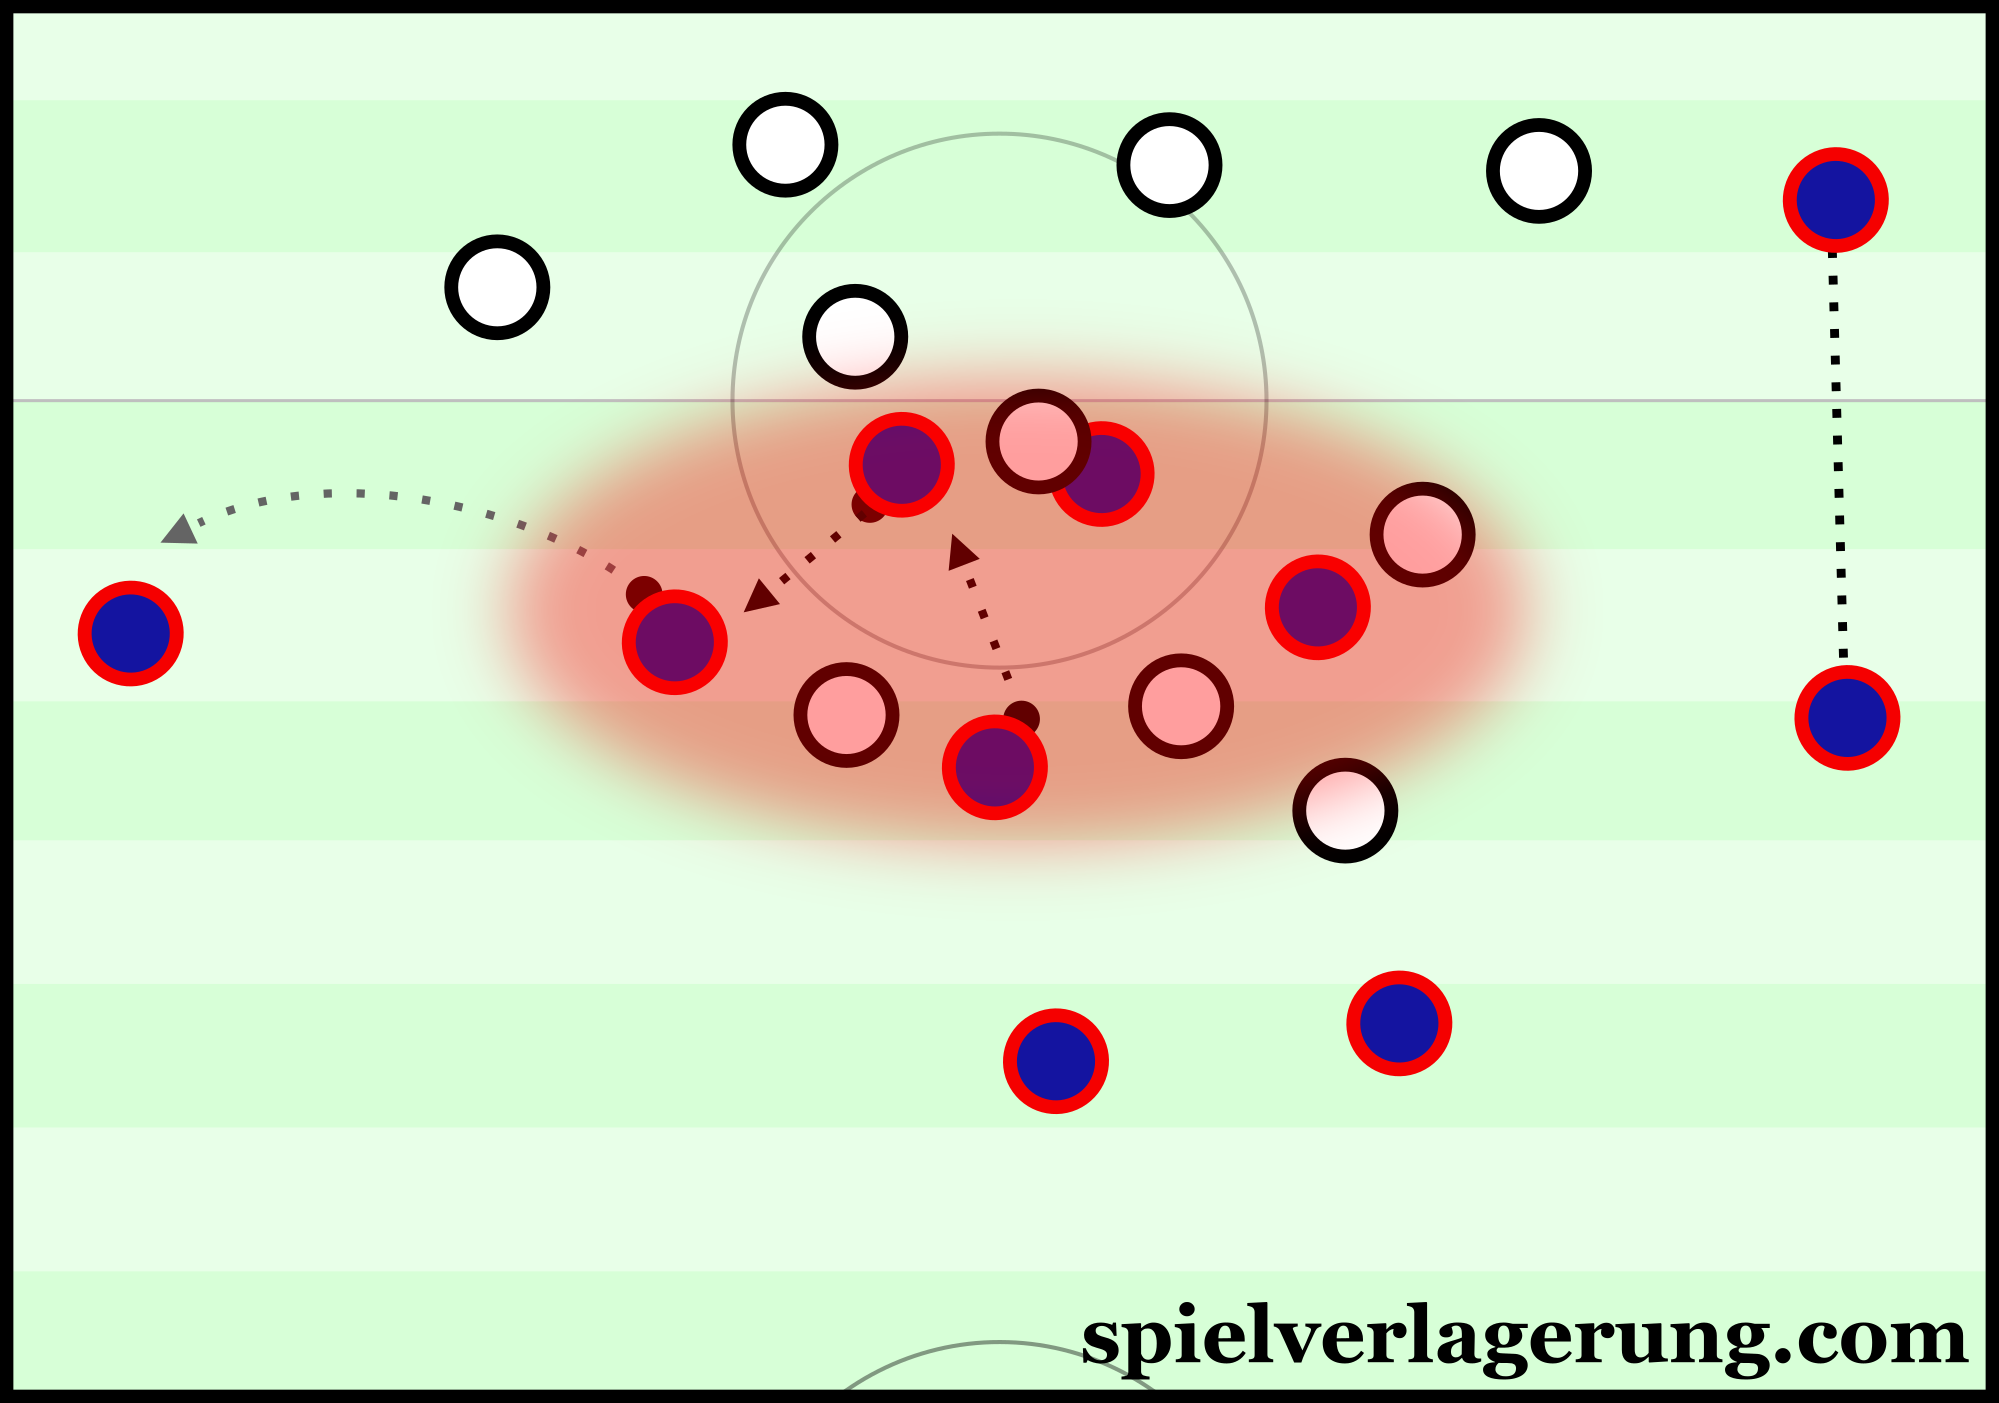 PSG showing weak structuring in their recent match with Lyon. There is only one clear forward pass available and even that has limited potential.